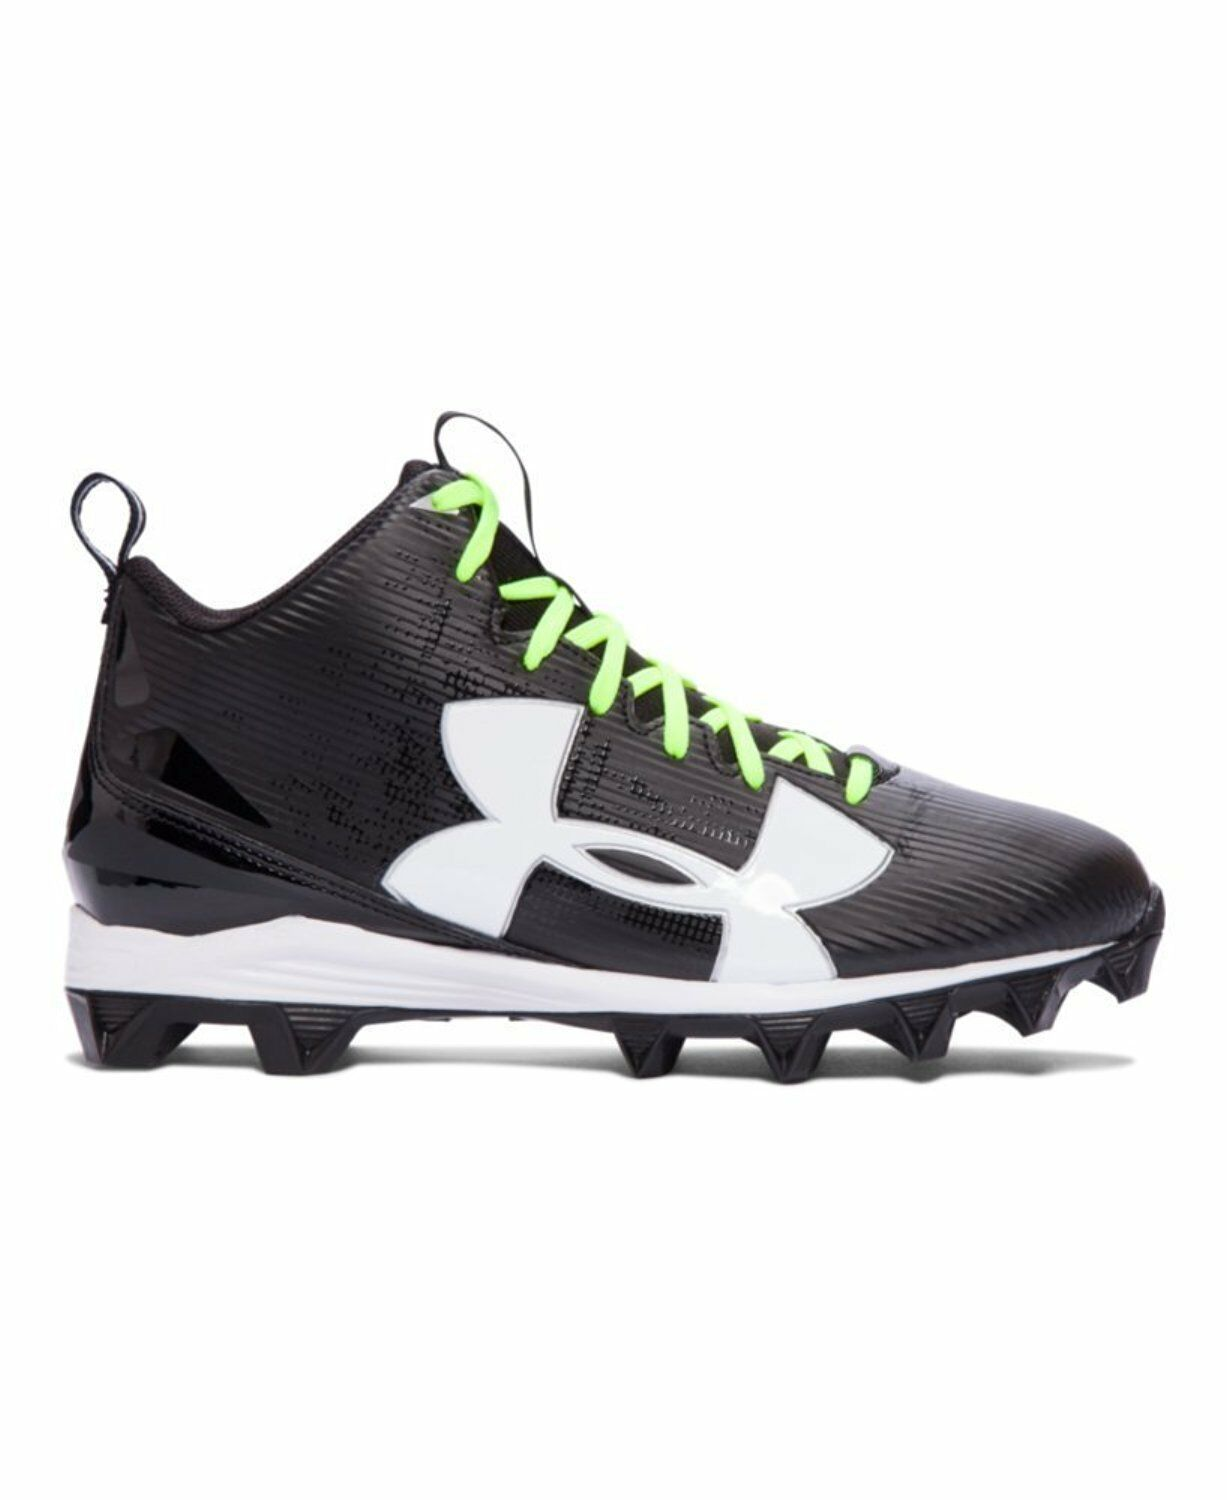 Under Armour 1286599-001 Cleats-  Uomo UA Crusher RM FTball Cleats- 1286599-001 Choose SZ/Farbe. ec699b